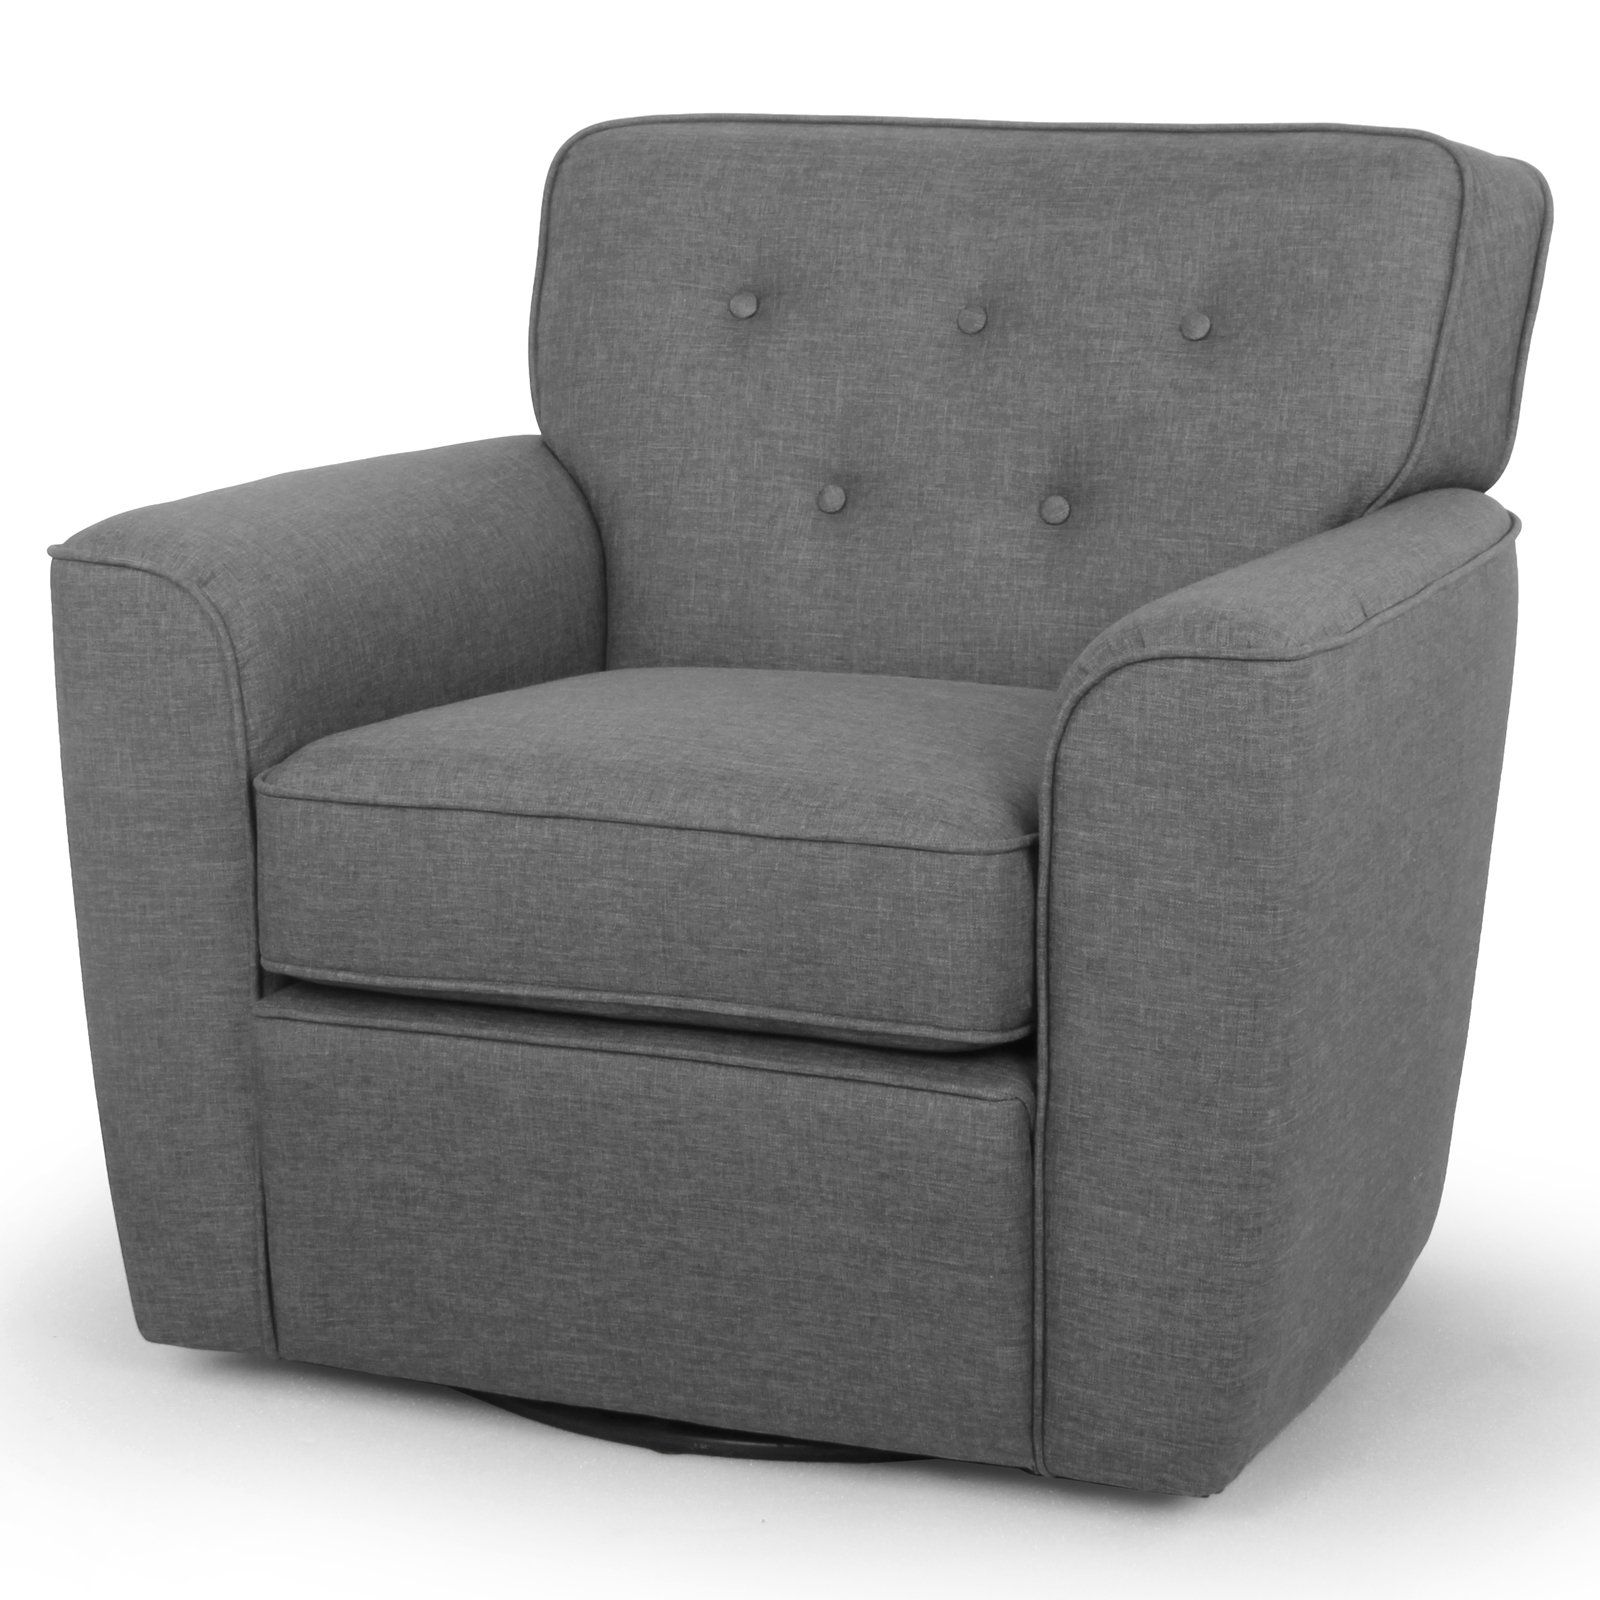 Baxton Studio Canberra Lounge Chair Gray Upholstered Swivel